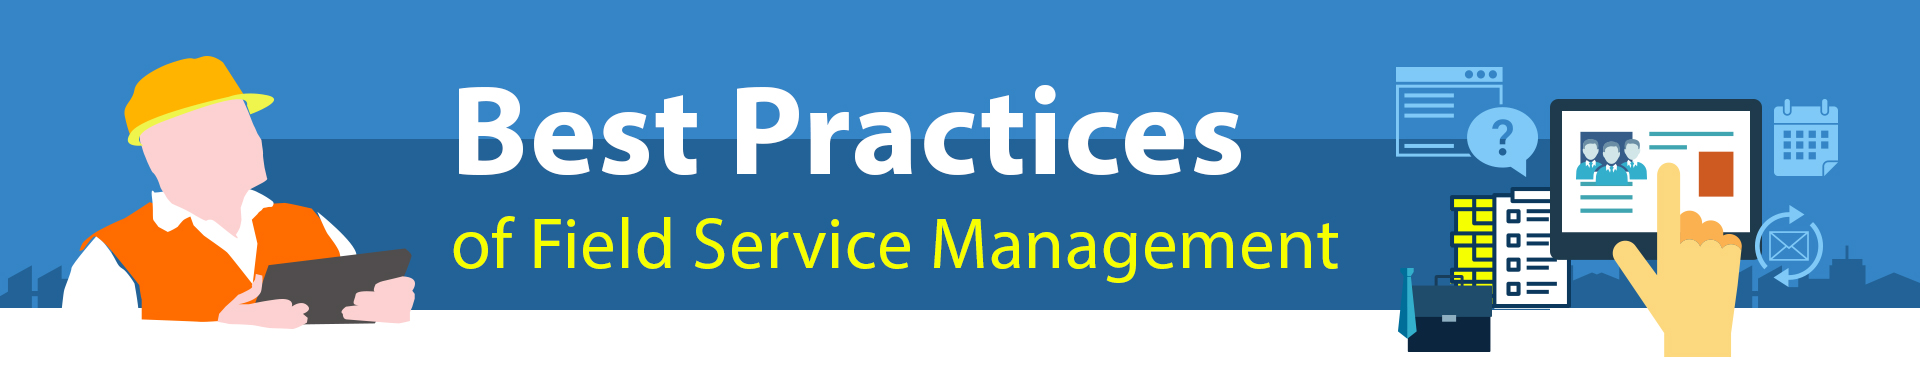 field service management best practices